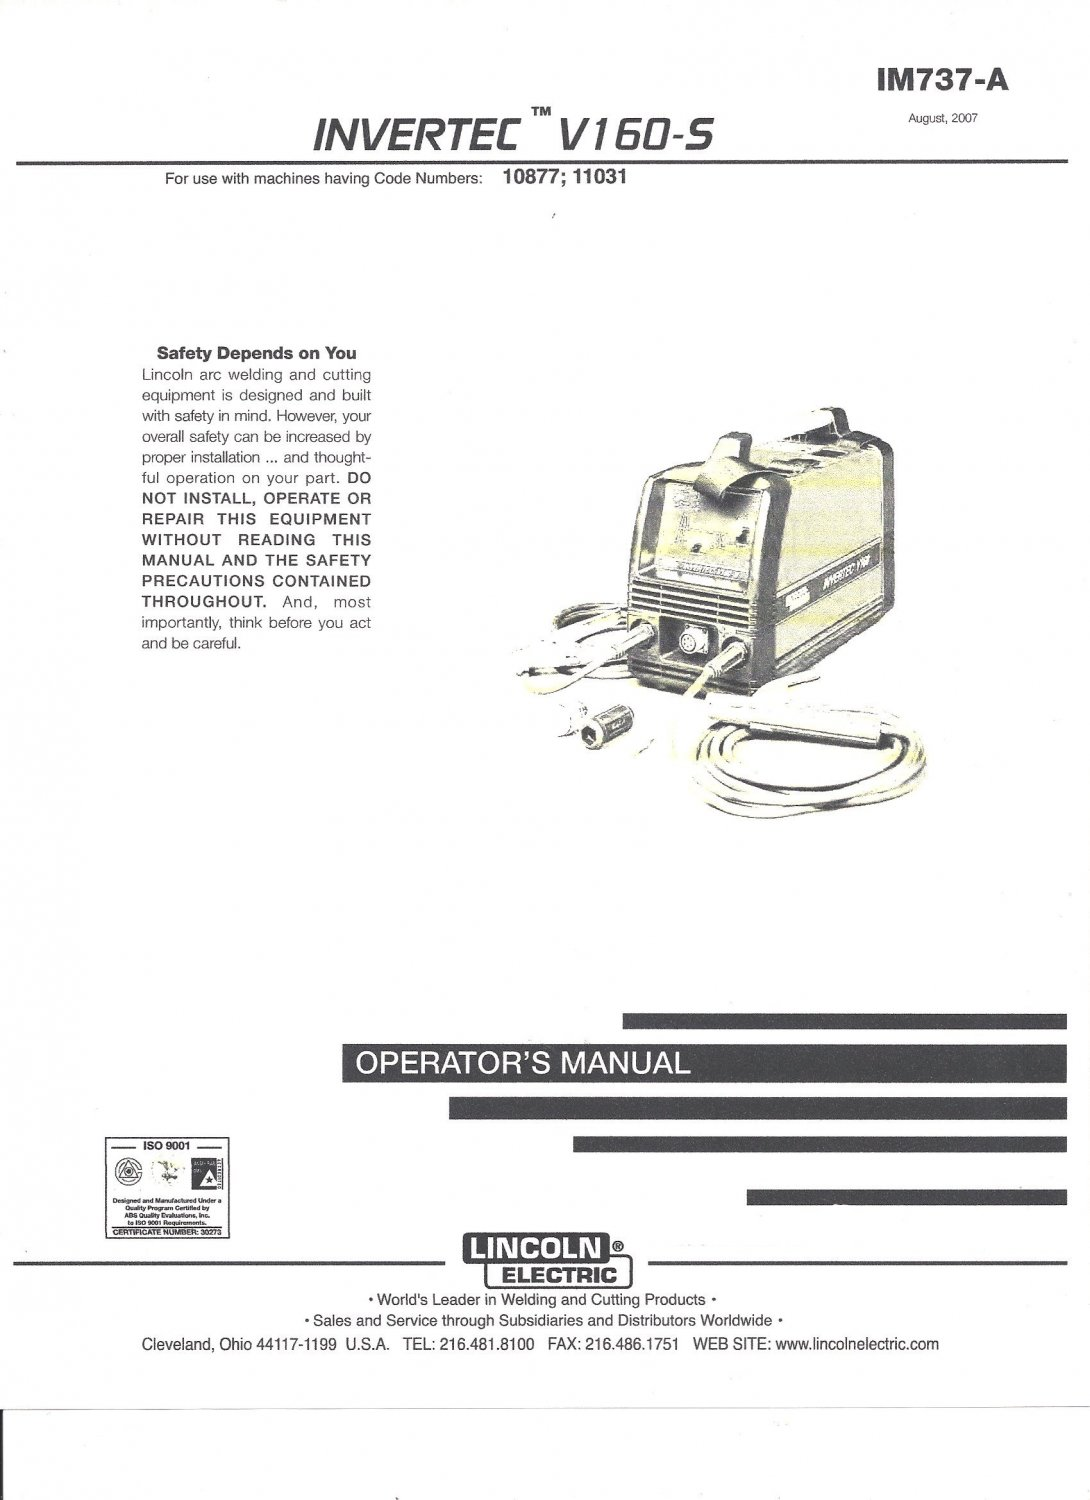 Lincoln Electric INVERTEC V160-S Welder Operator's Manual